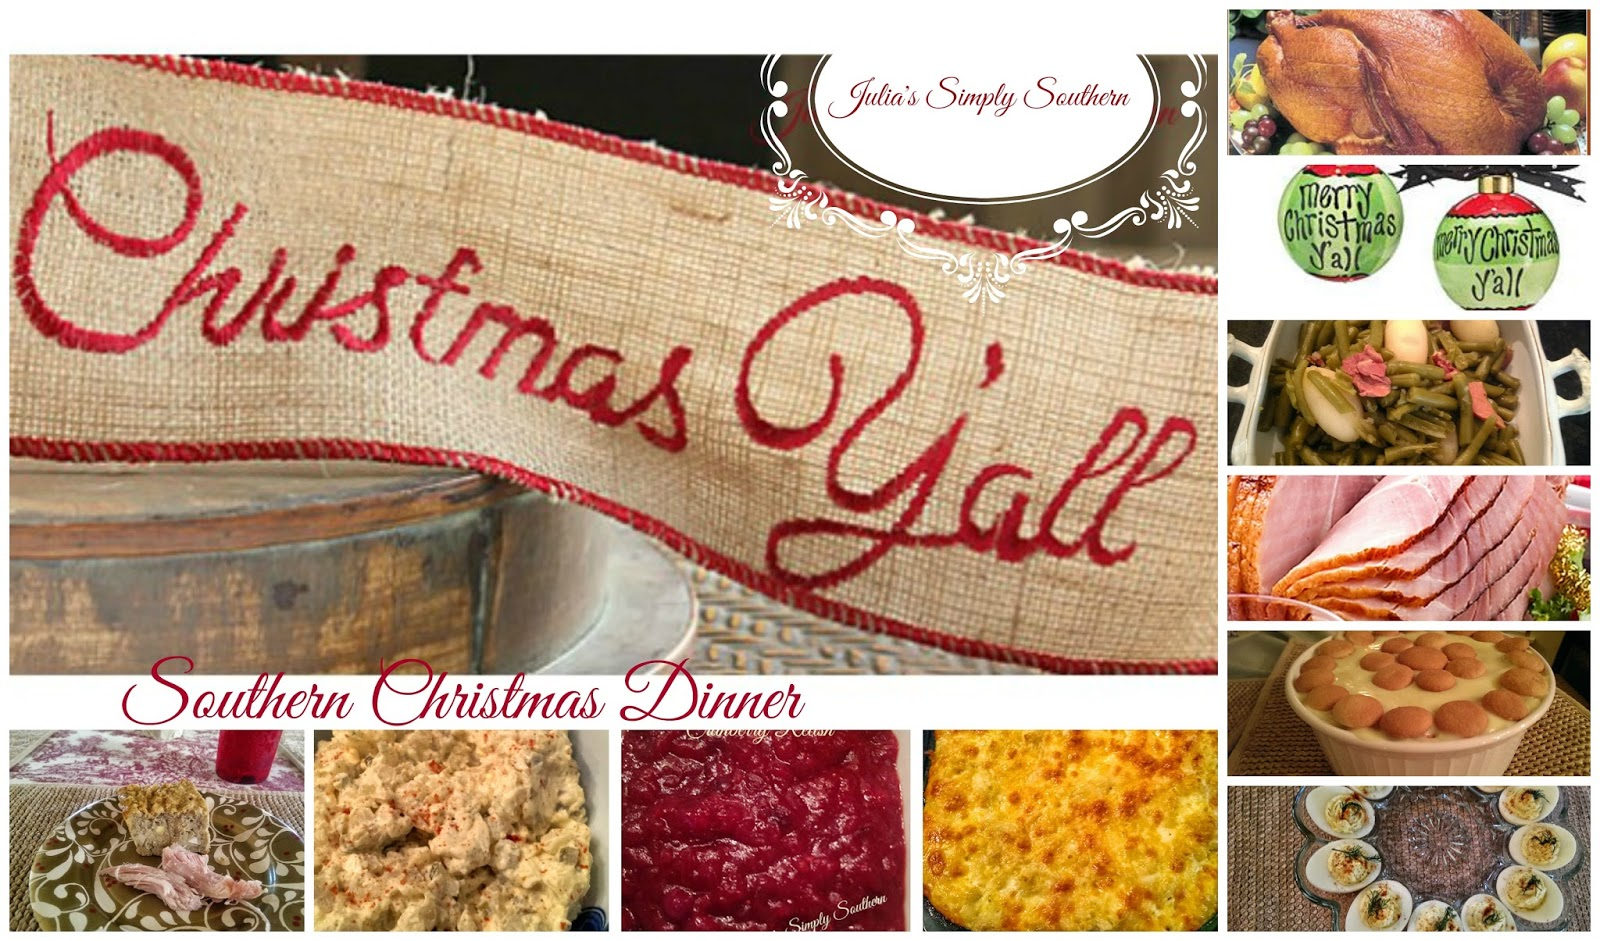 Julia's Simply Southern: Southern Christmas Dinner Recipes and ...